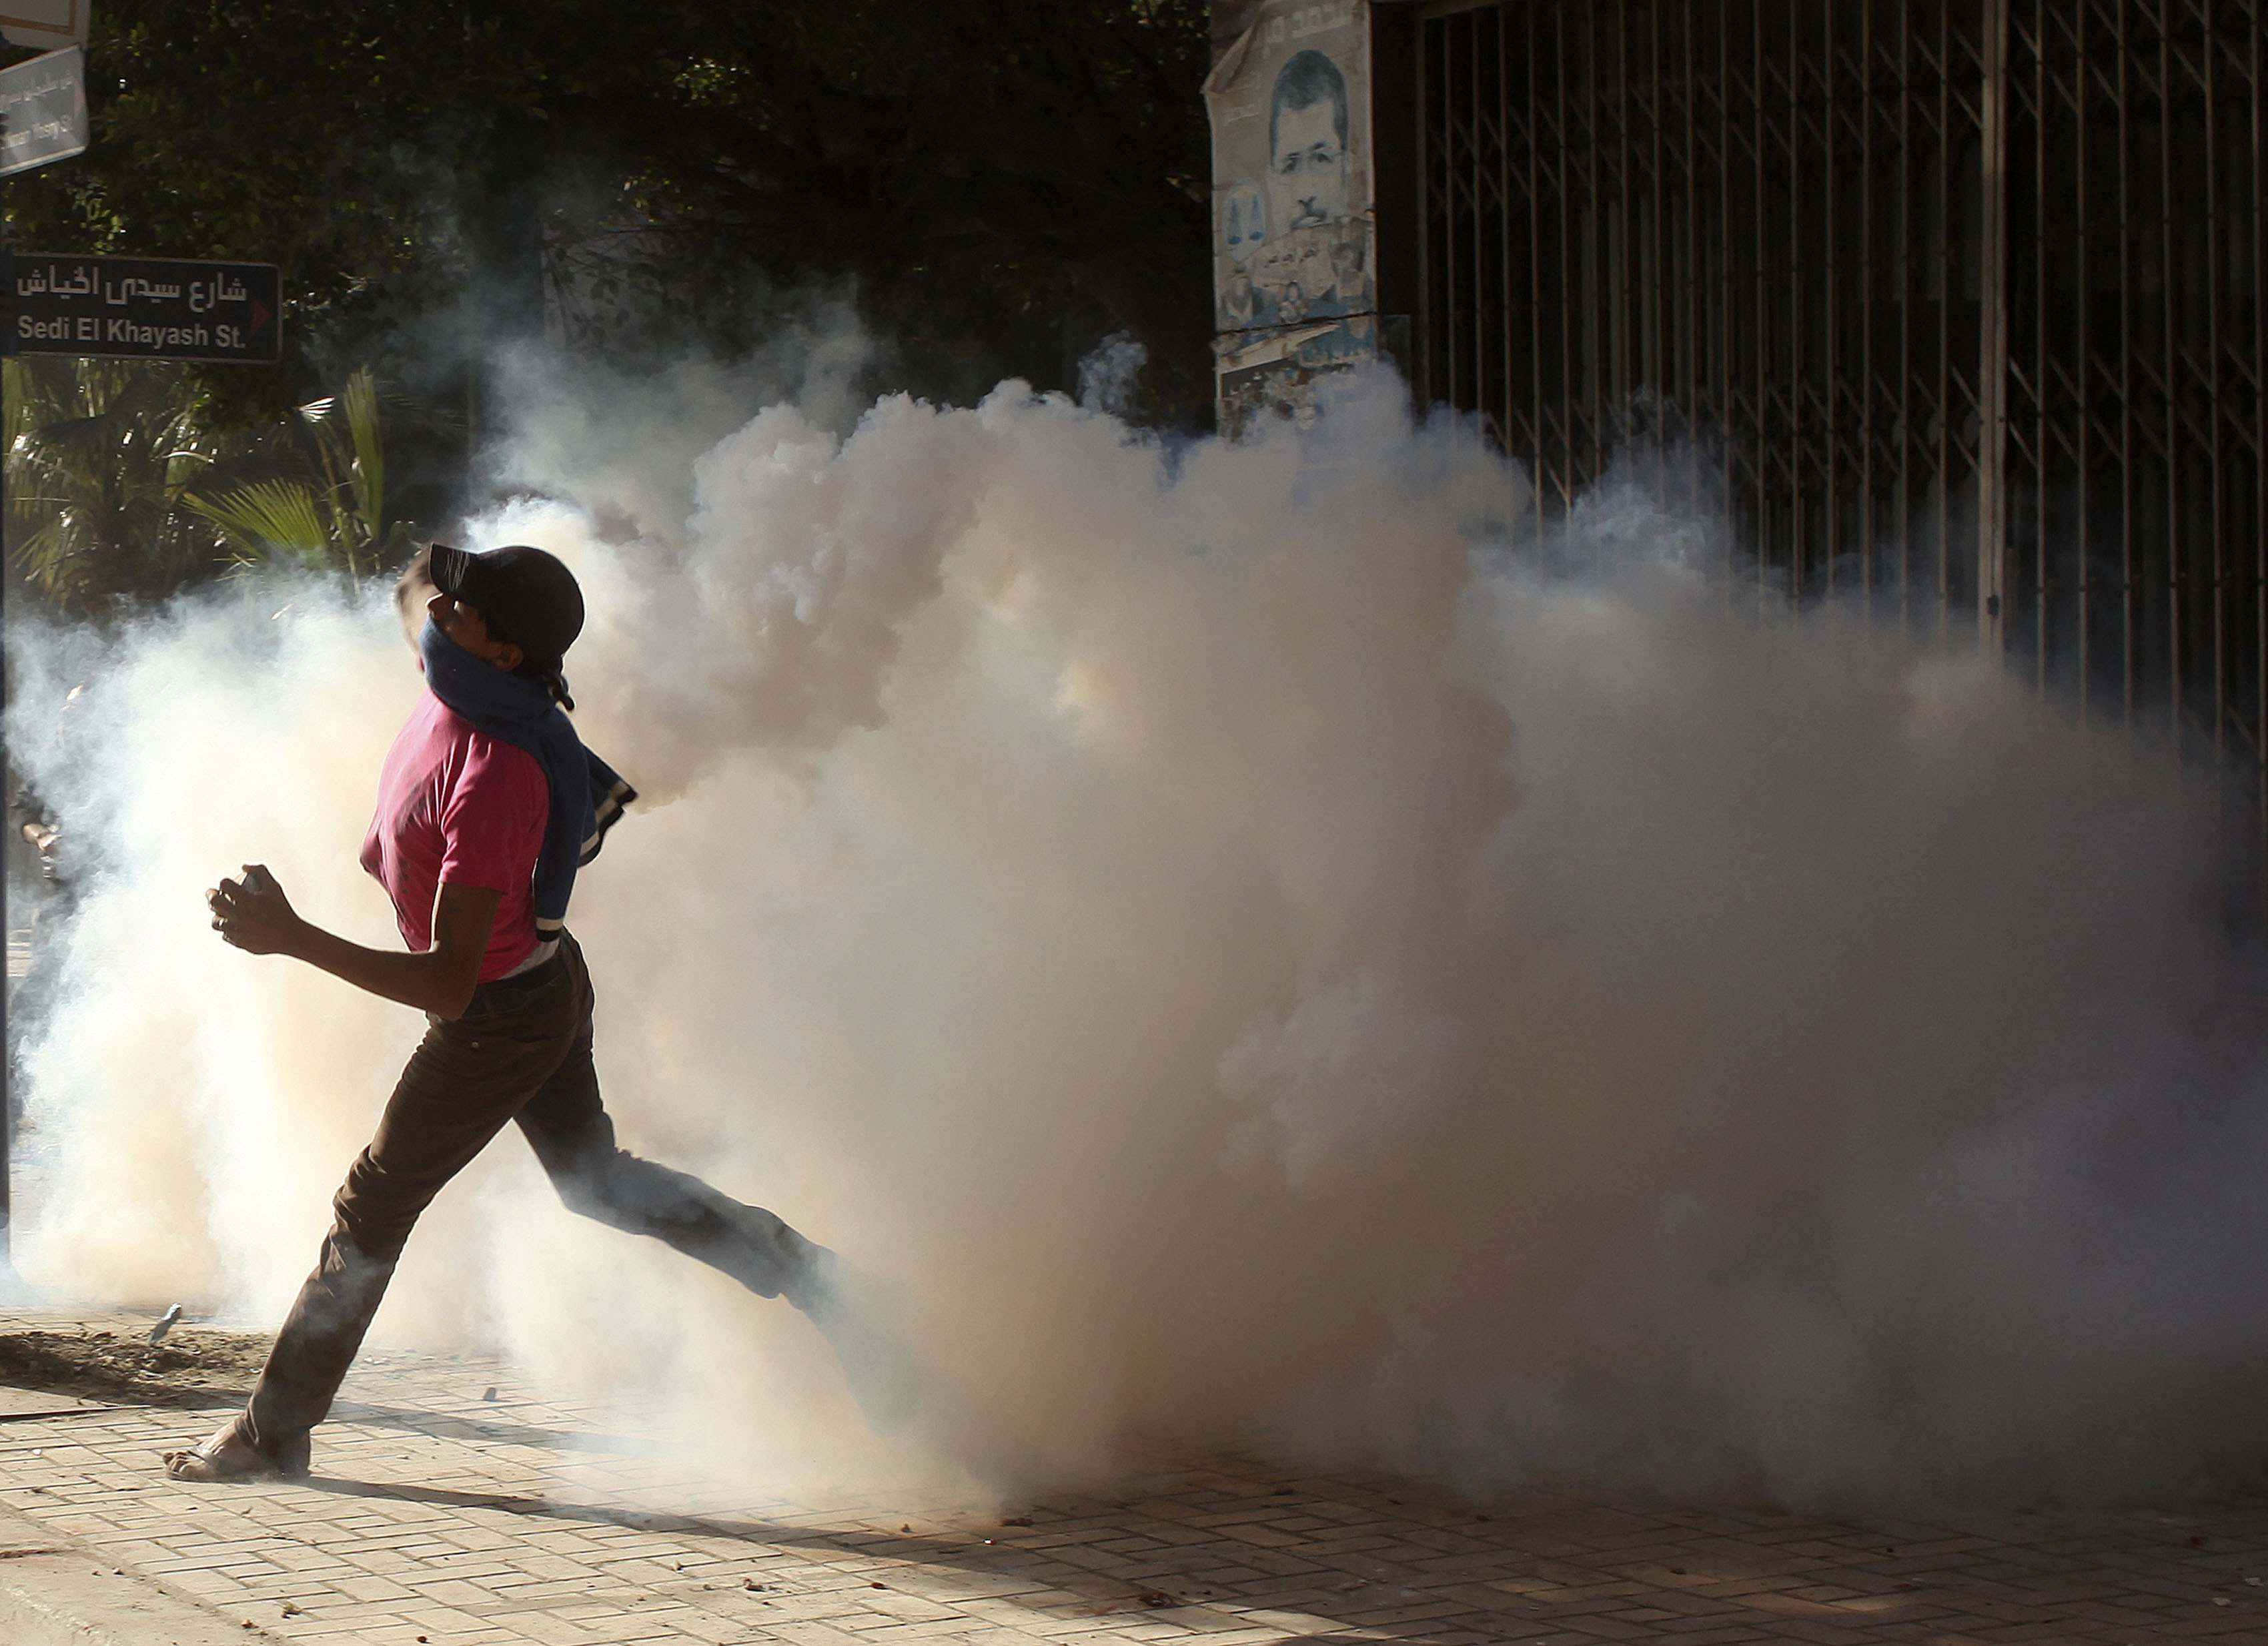 Alexandria police fire teargas at protesters